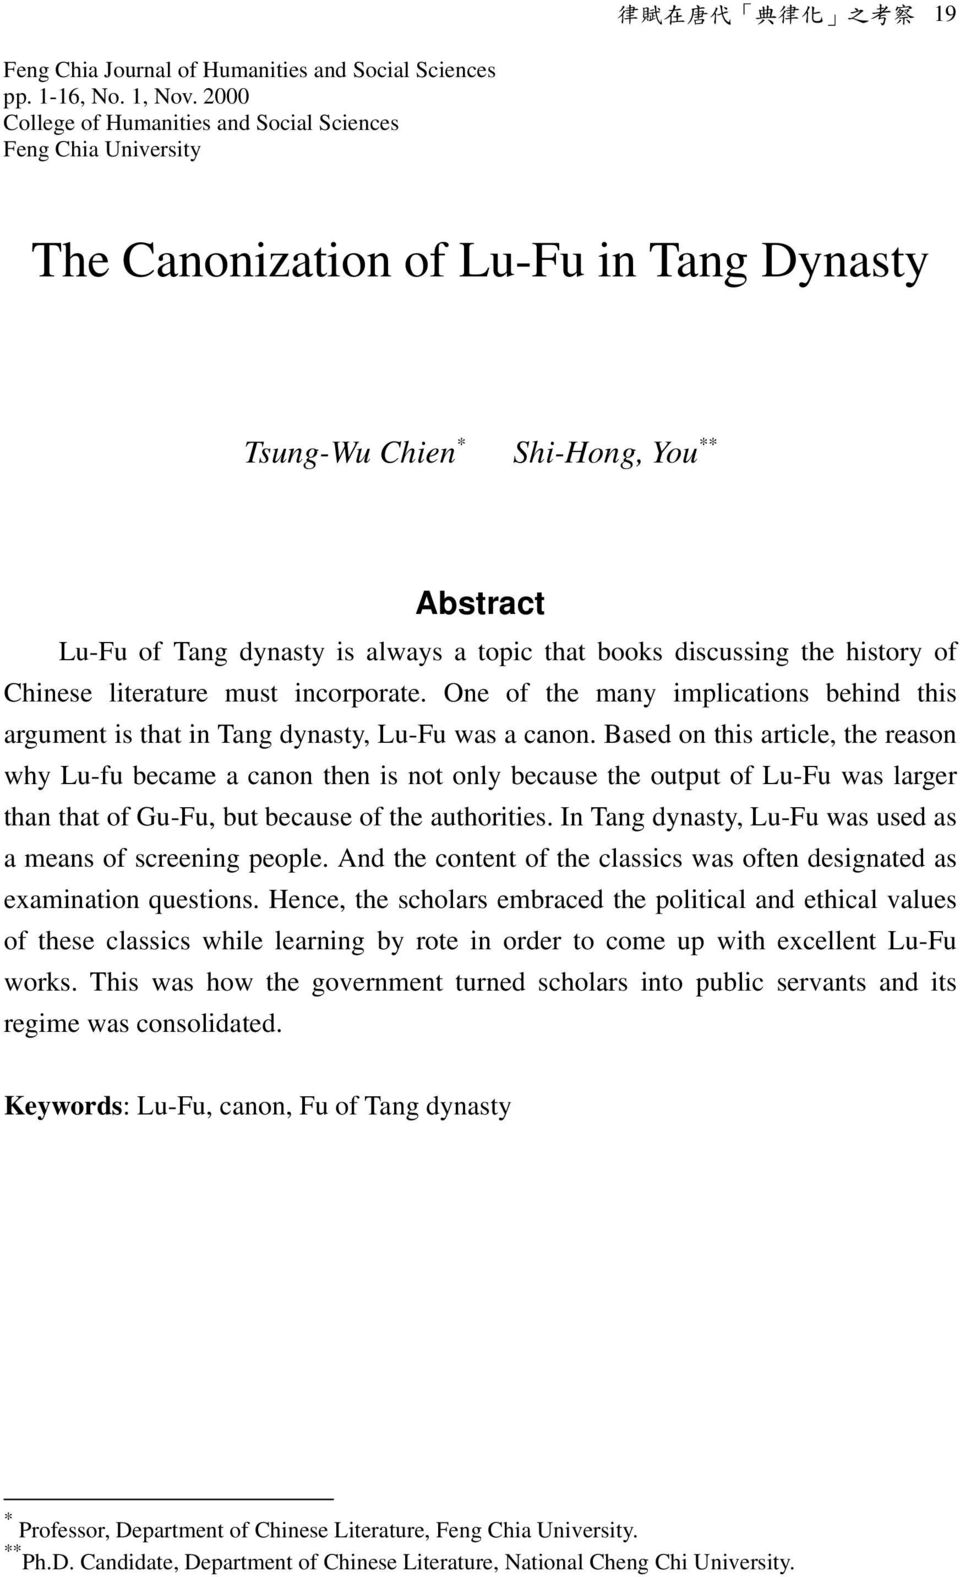 books discussing the history of Chinese literature must incorporate. One of the many implications behind this argument is that in Tang dynasty, Lu-Fu was a canon.